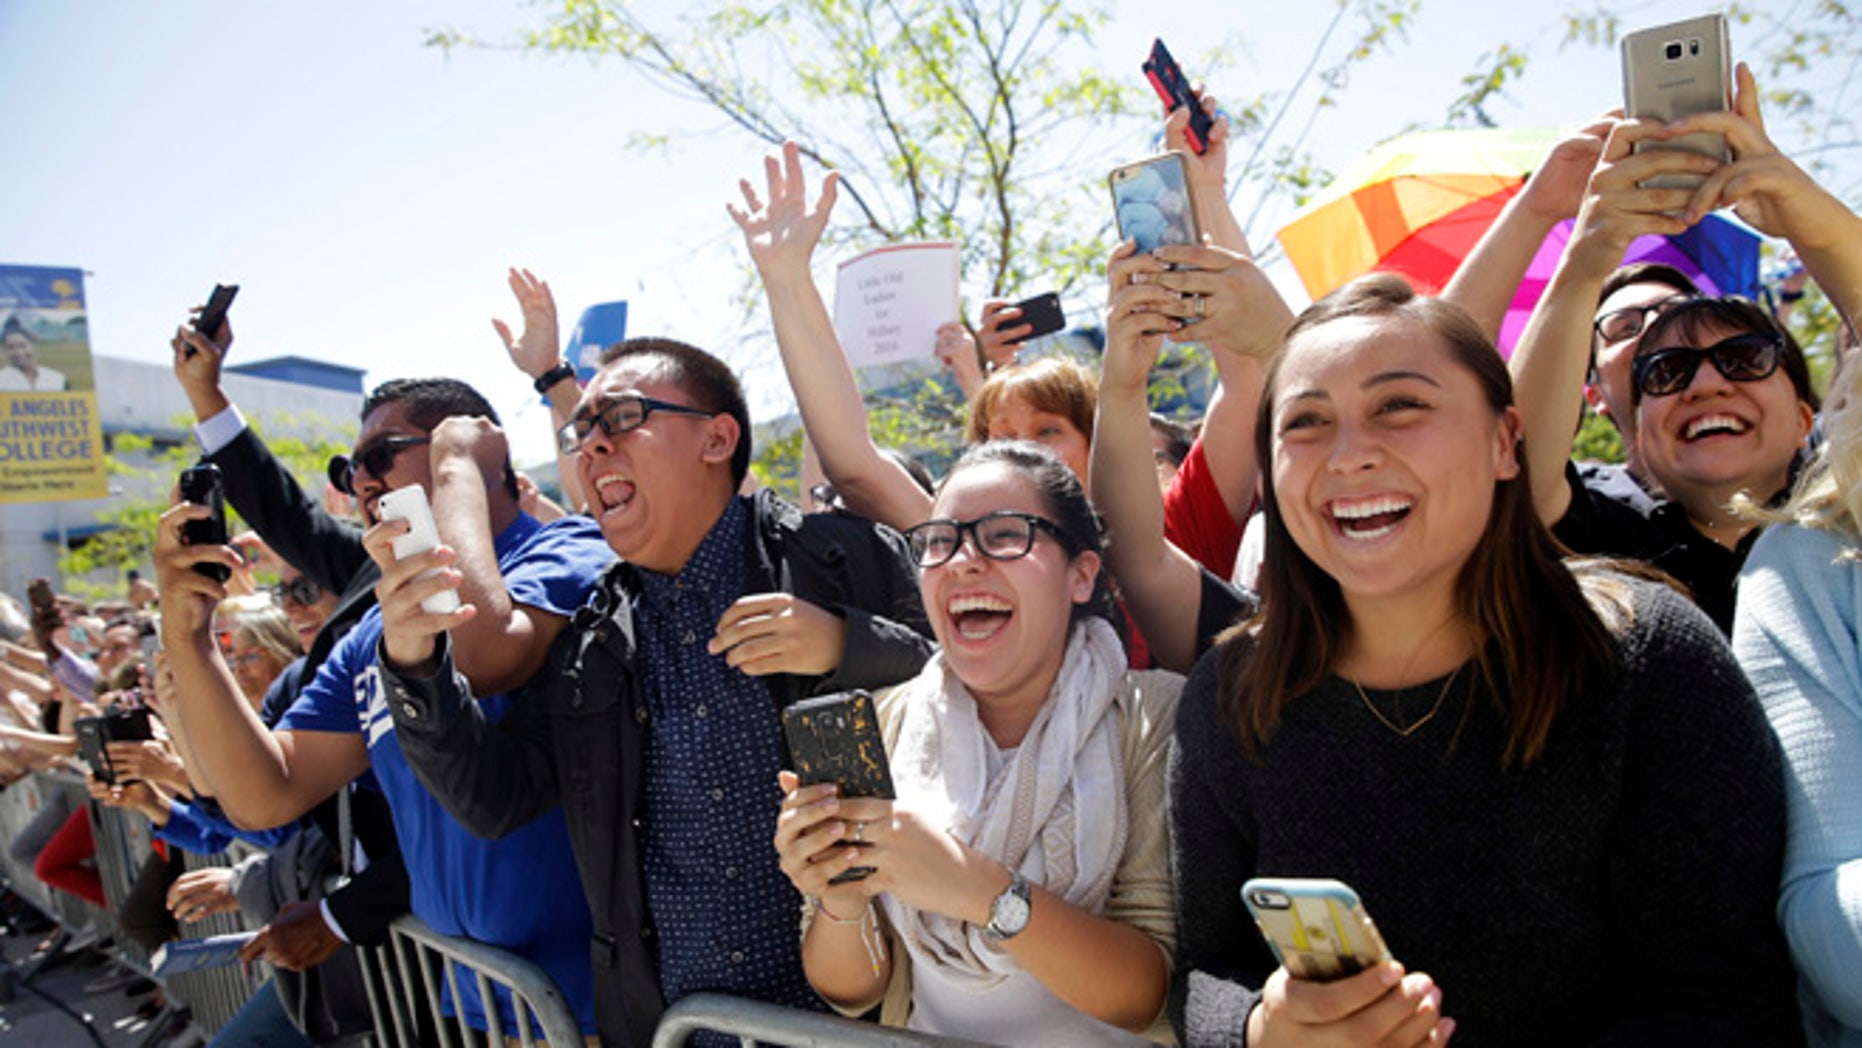 FILE - In this April 16, 2016 file photo, supporters in the overflow area cheer as Democratic presidential candidate Hillary Clinton walks toward them during a campaign event at Los Angeles Southwest College in Los Angeles. Facing a close contest in California with Bernie Sanders, Clinton returns to a crucial battleground this week when she will rally supporters in East Los Angeles, a heavily Hispanic neighborhood which she carried as a presidential candidate in 2008.  (AP Photo/Jae C. Hong, File)